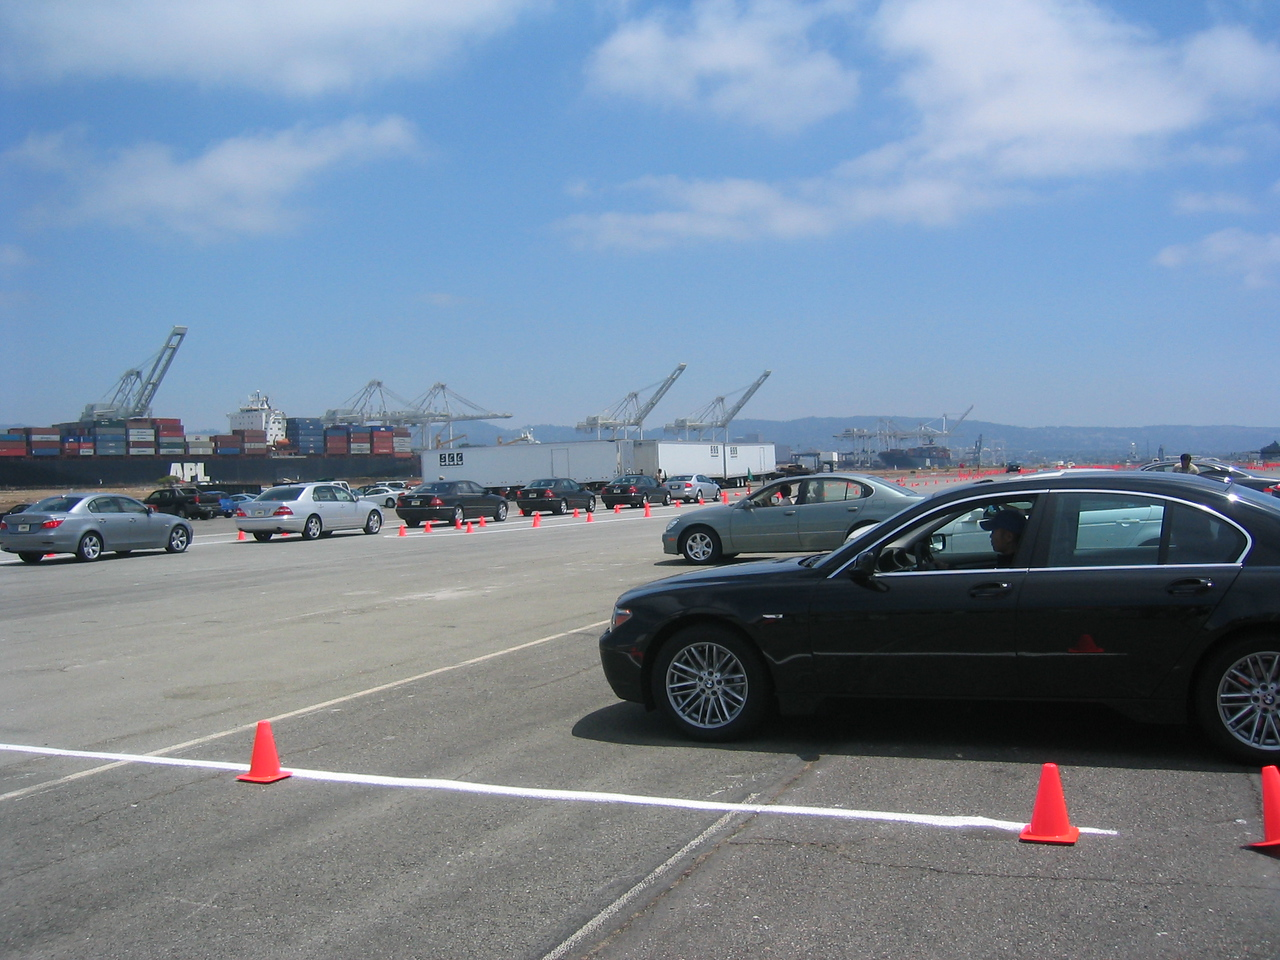 2004 07 10 Saturday - Lexus Taste of Luxury event @ Alameda Point with Marc Rice 1